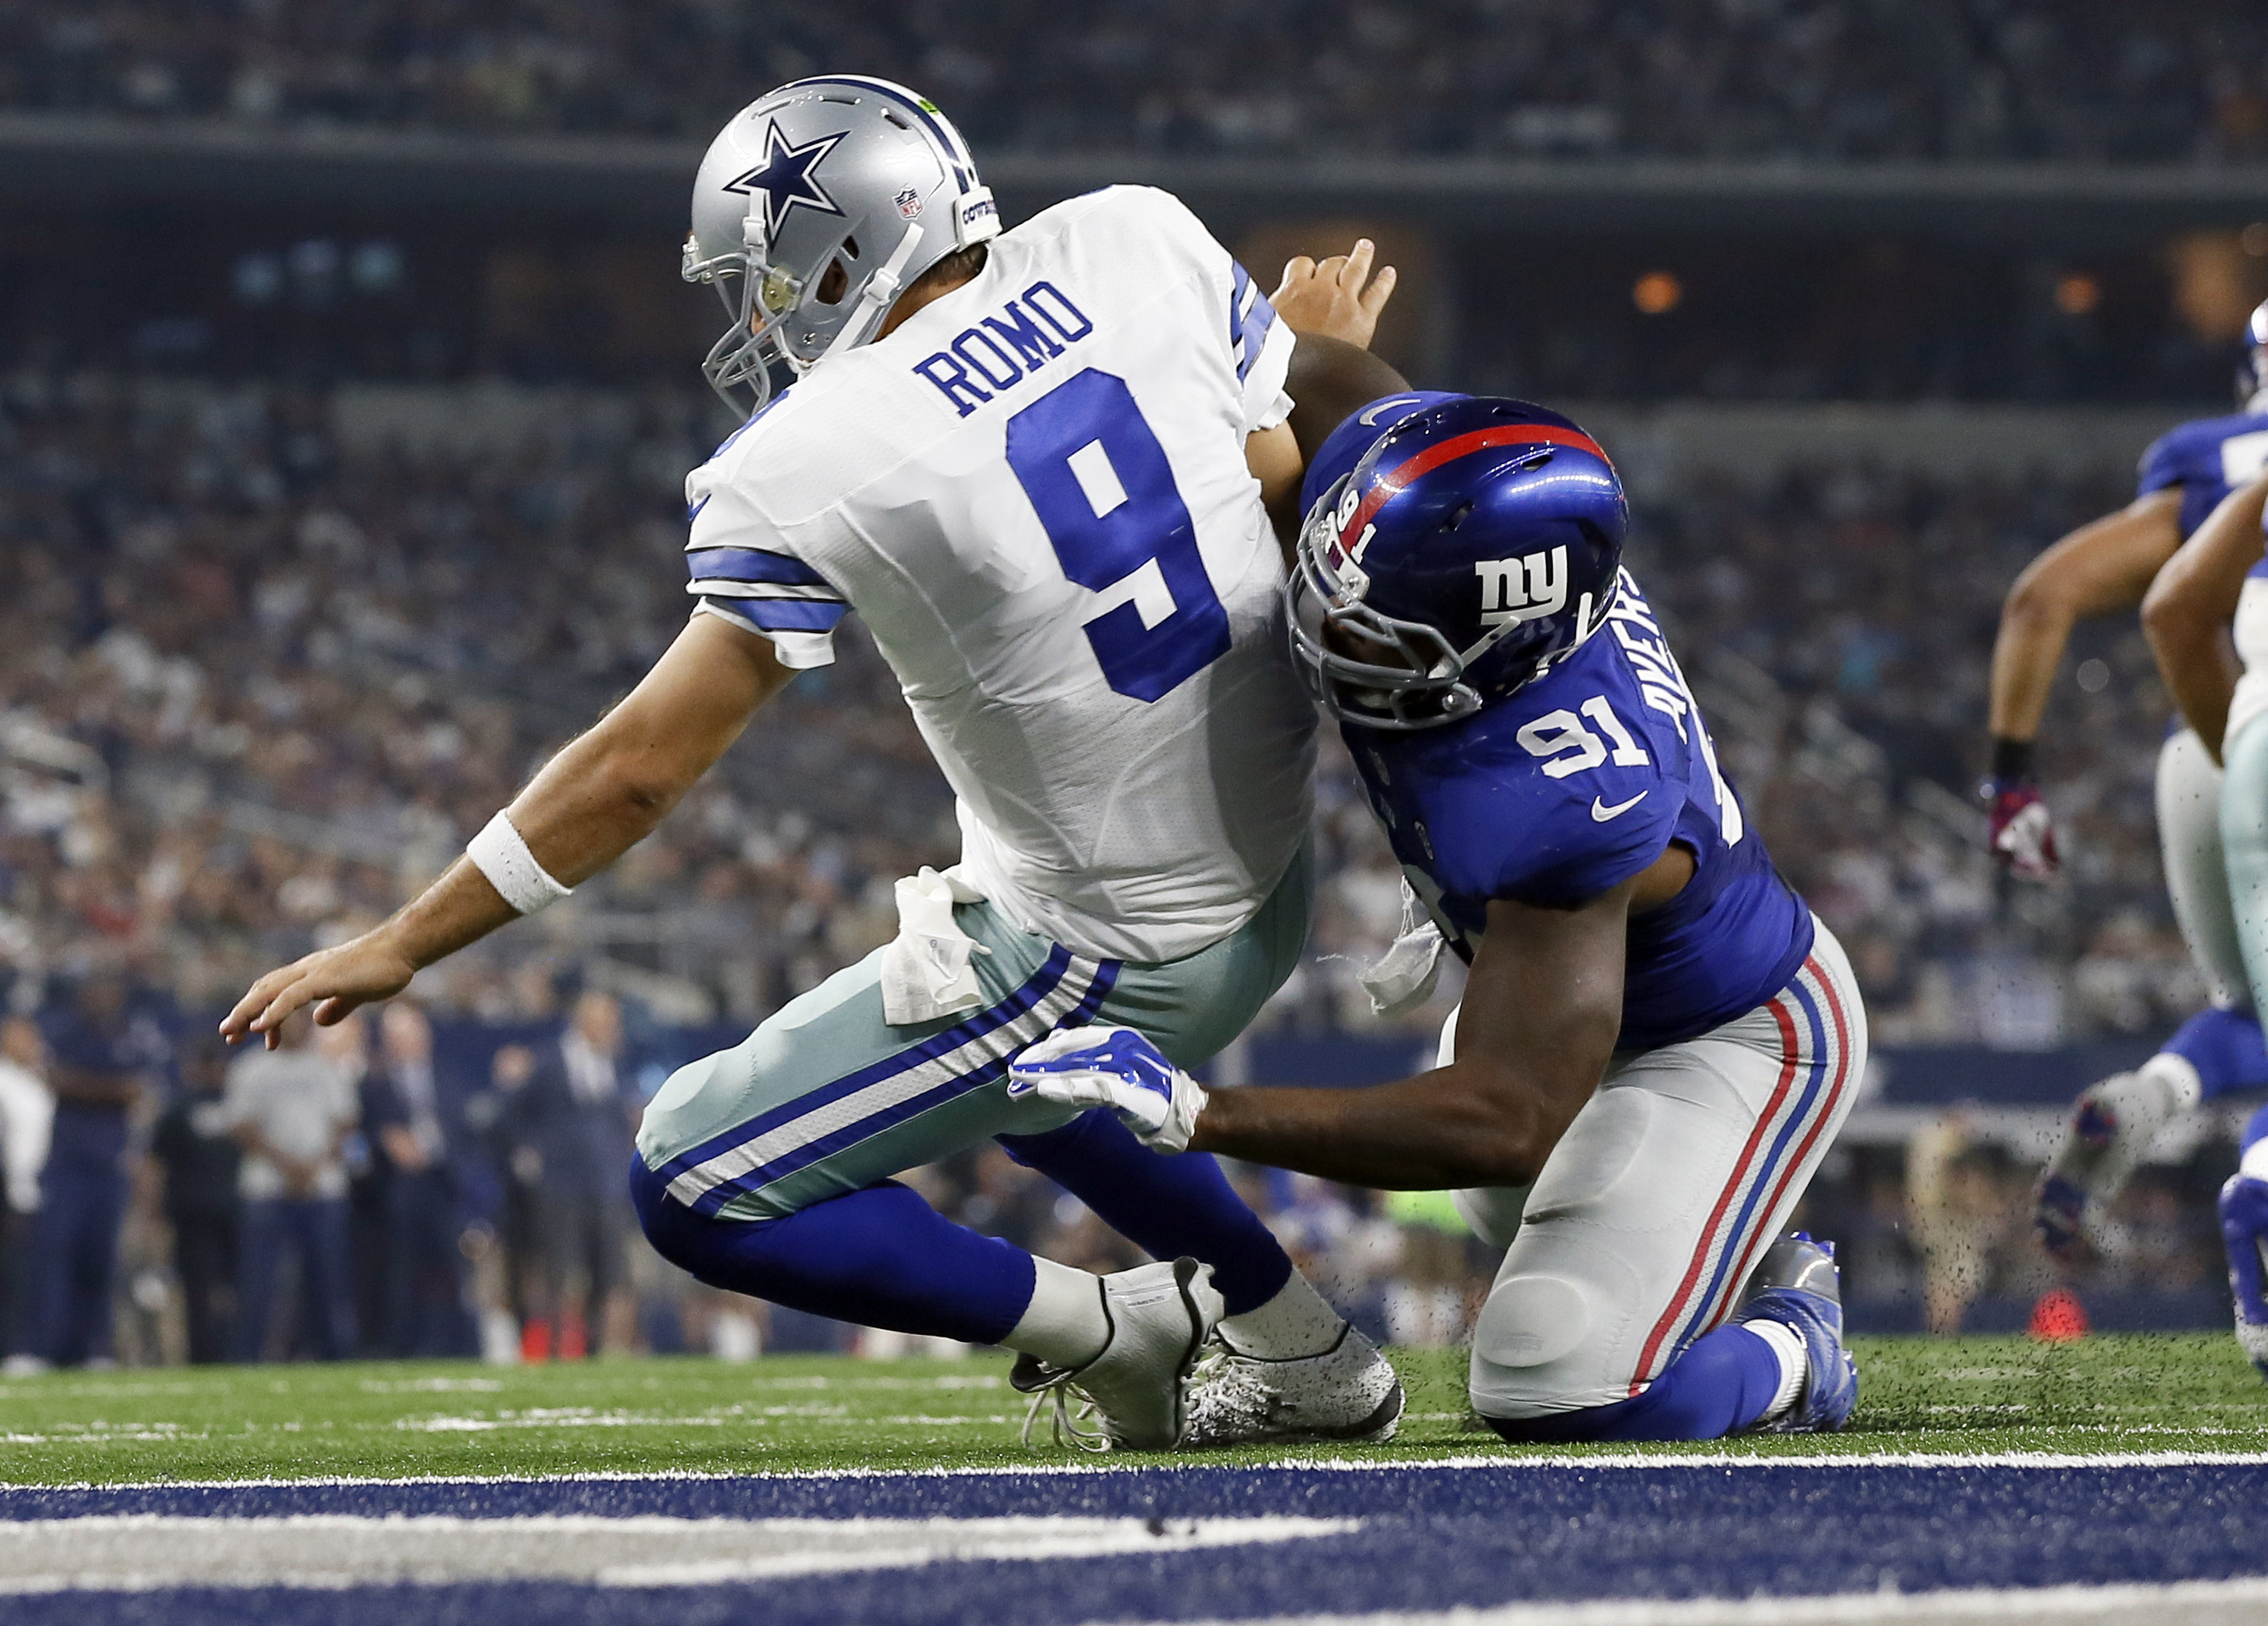 Dallas Cowboys quarterback Tony Romo (9) is sacked by New York Giants defensive end Robert Ayers (91) during the second half of an NFL football game Sunday, Sept. 13, 2015, in Arlington, Texas. (AP Photo/Tony Gutierrez)